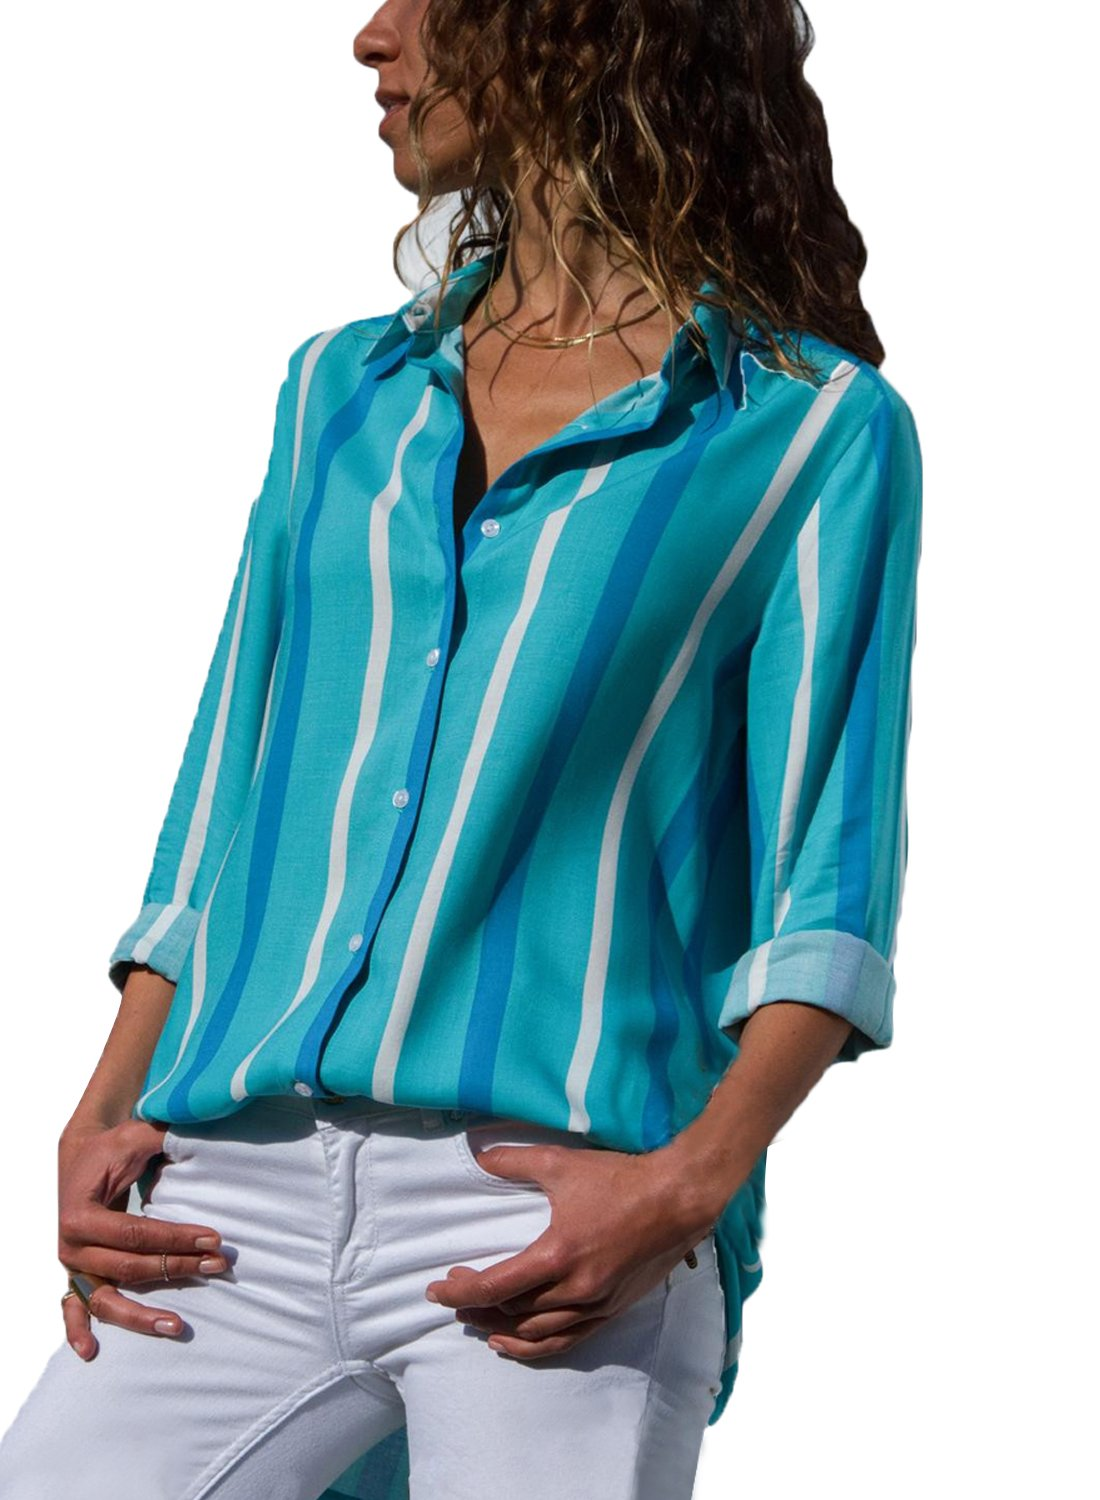 Astylish Women Casual Cuffed 3 4 Sleeve Button up V Neck Tunic Shirts Tops